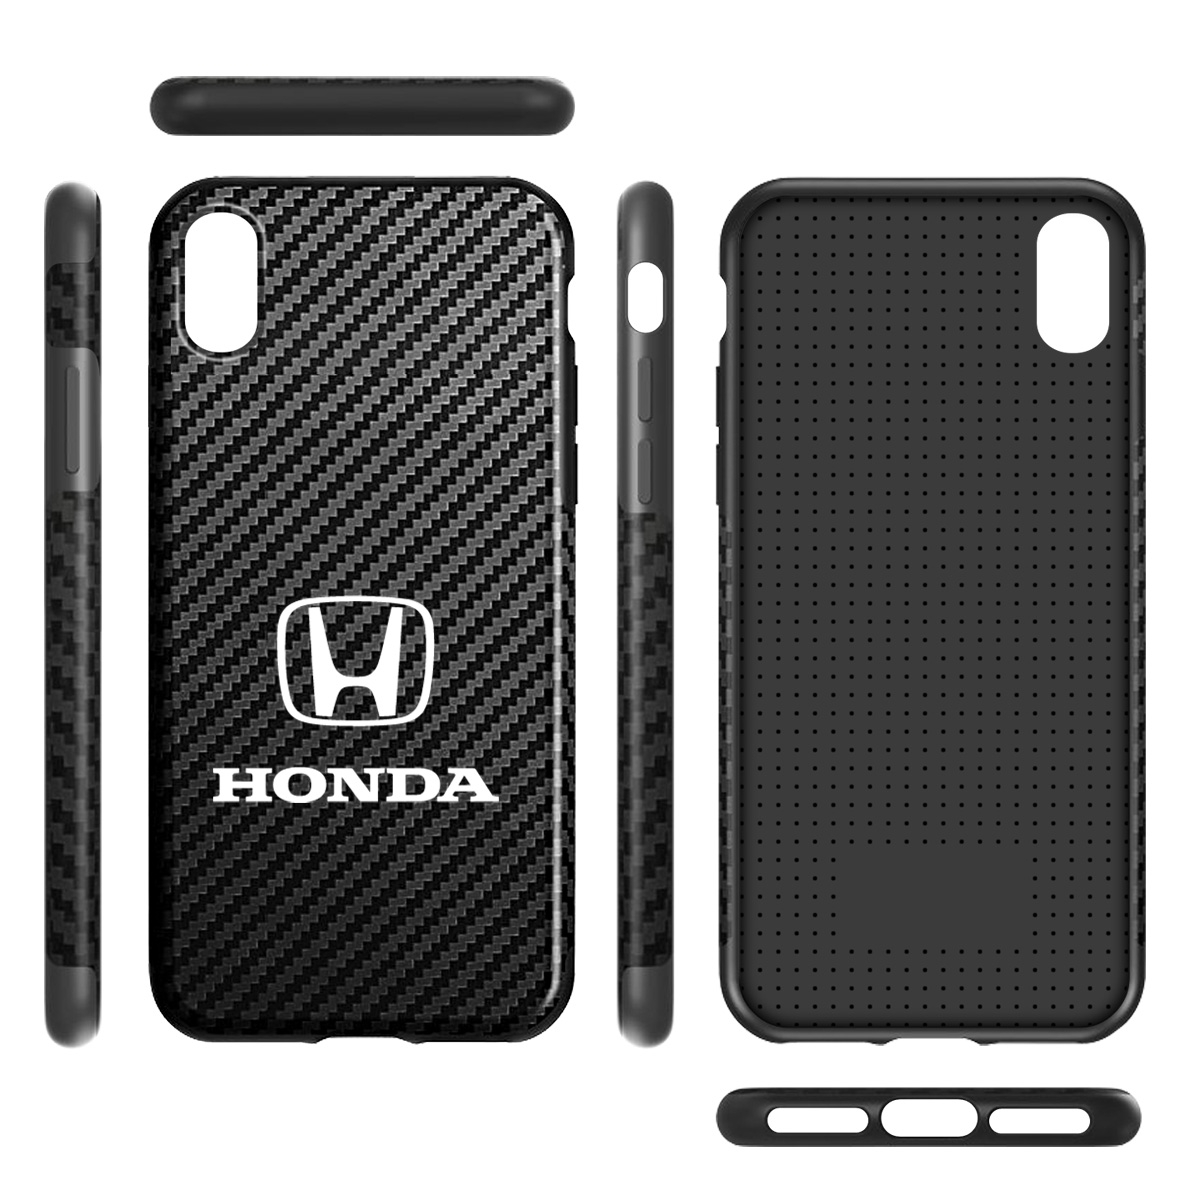 Honda Logo Black Carbon Fiber Texture Leather TPU Shockproof Cell Phone Case